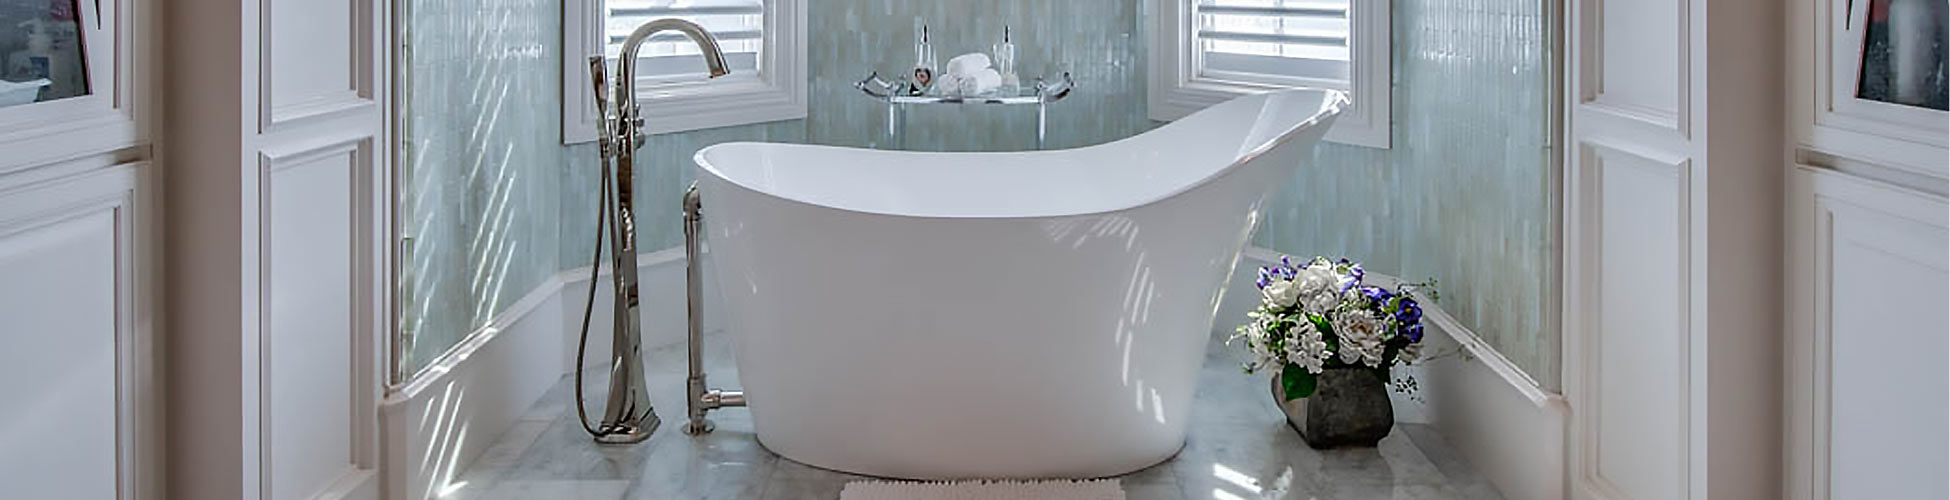 custom-bathroom-with-tub.jpg